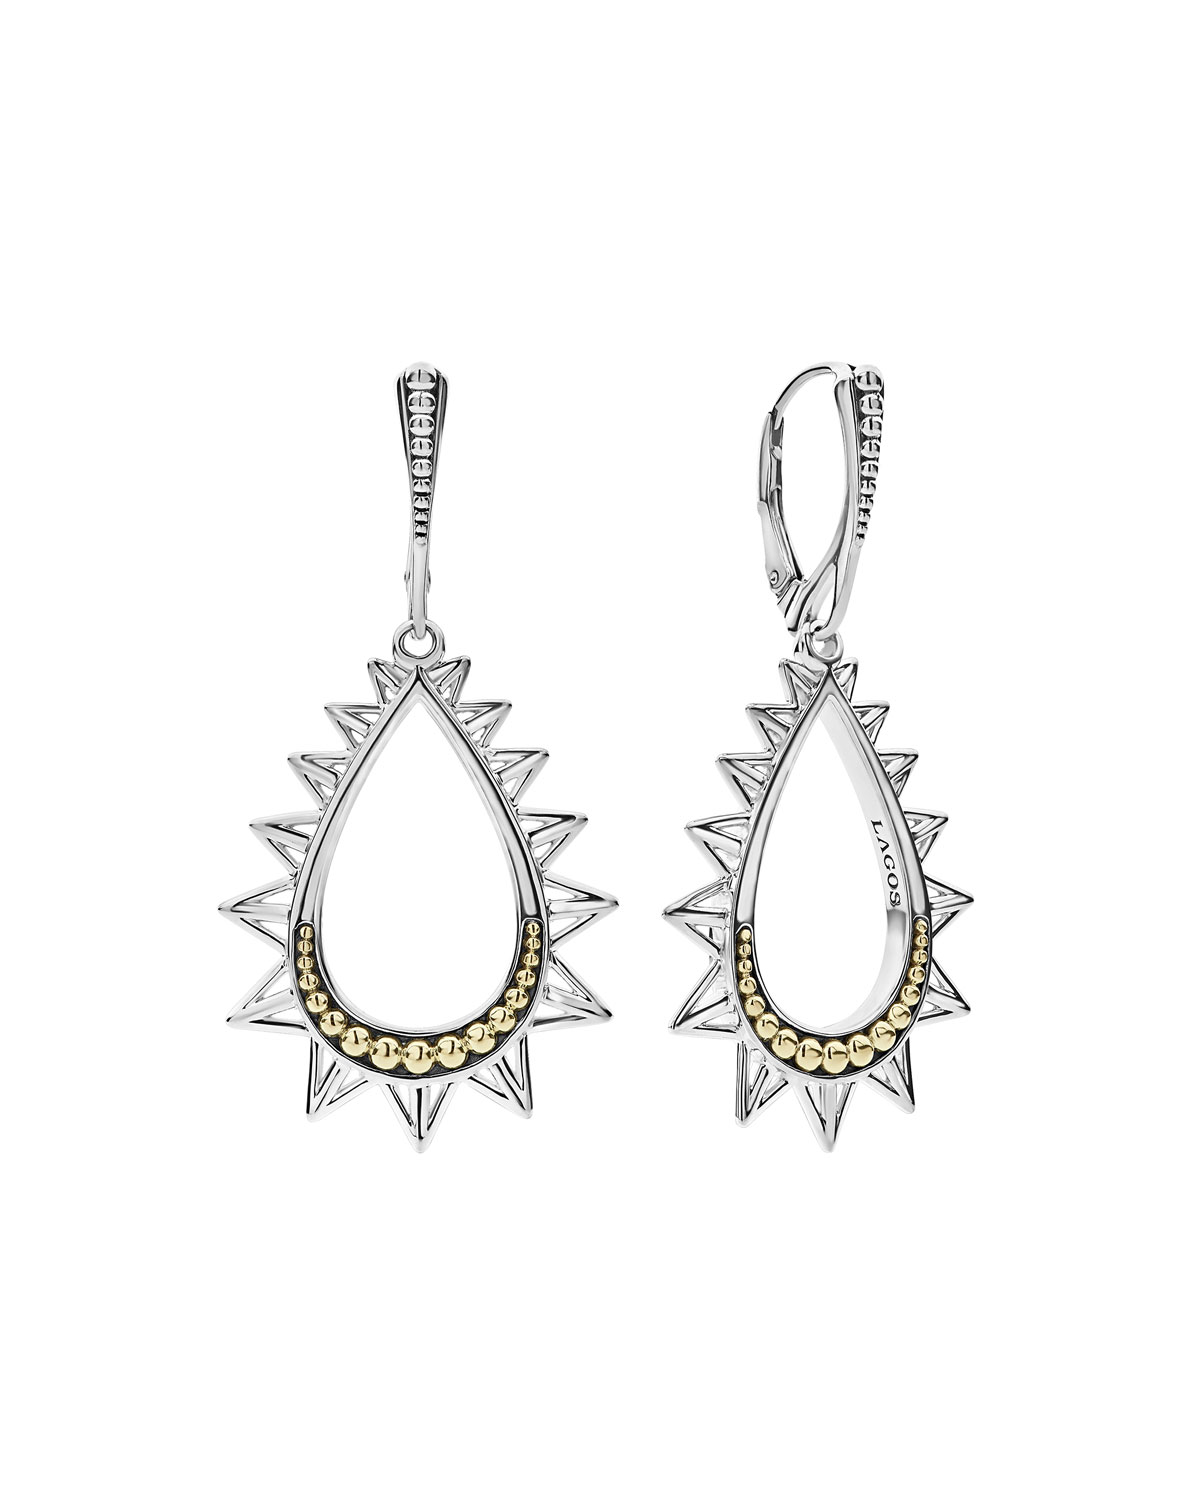 Ksl Silver 18k Gold Spiked Pear Drop Earrings